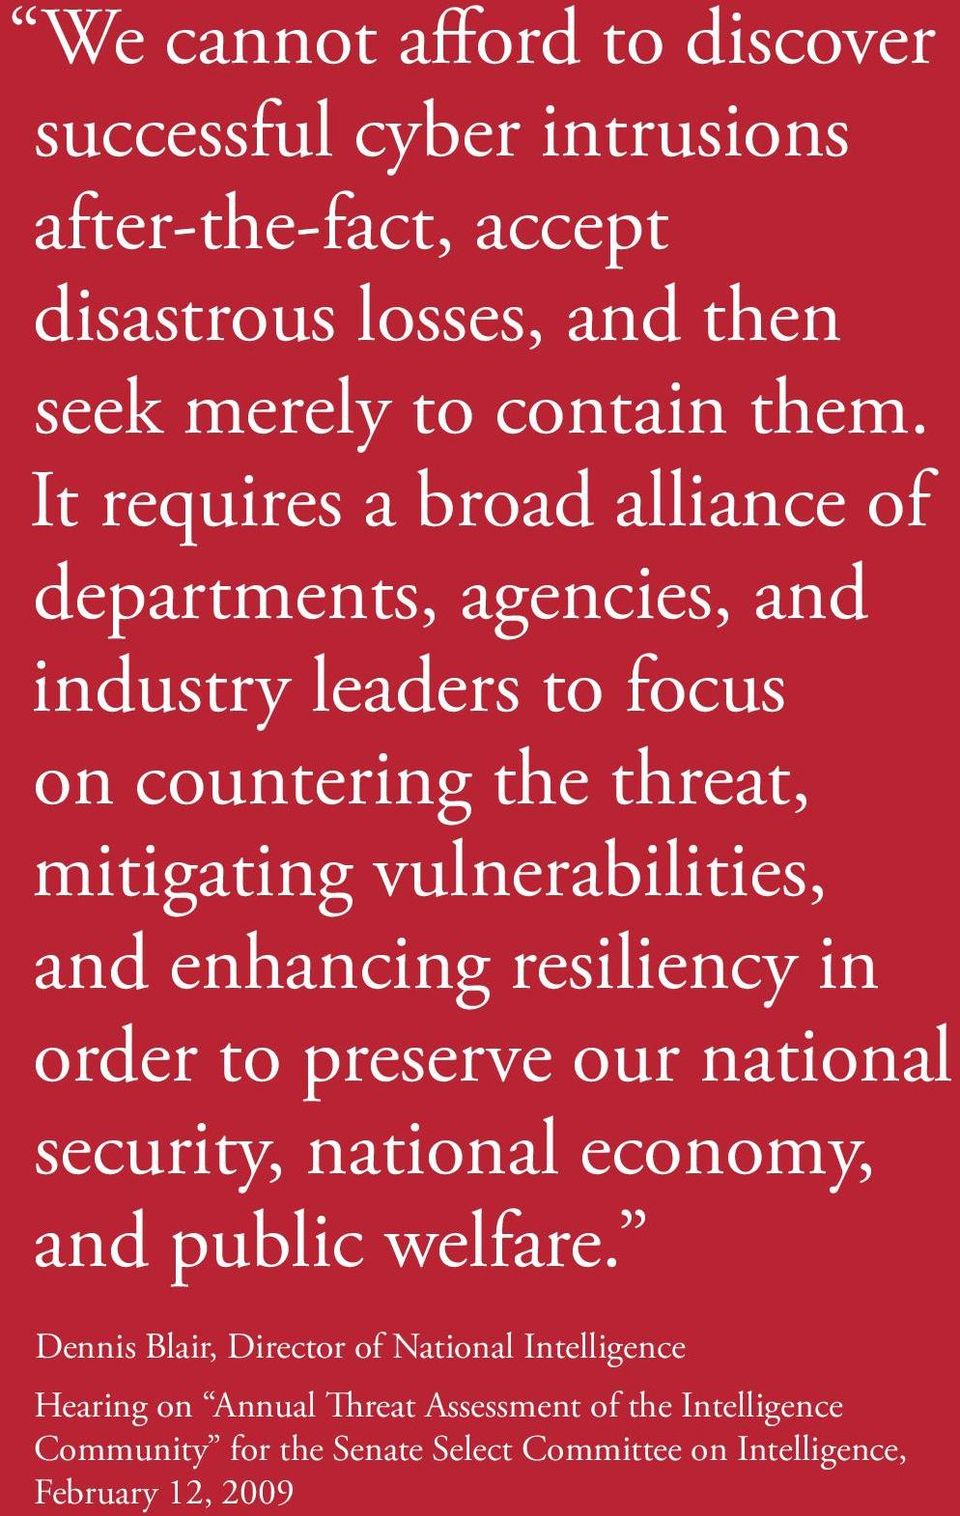 It requires a broad alliance of departments, agencies, and industry leaders to focus on countering the threat, mitigating vulnerabilities, and enhancing